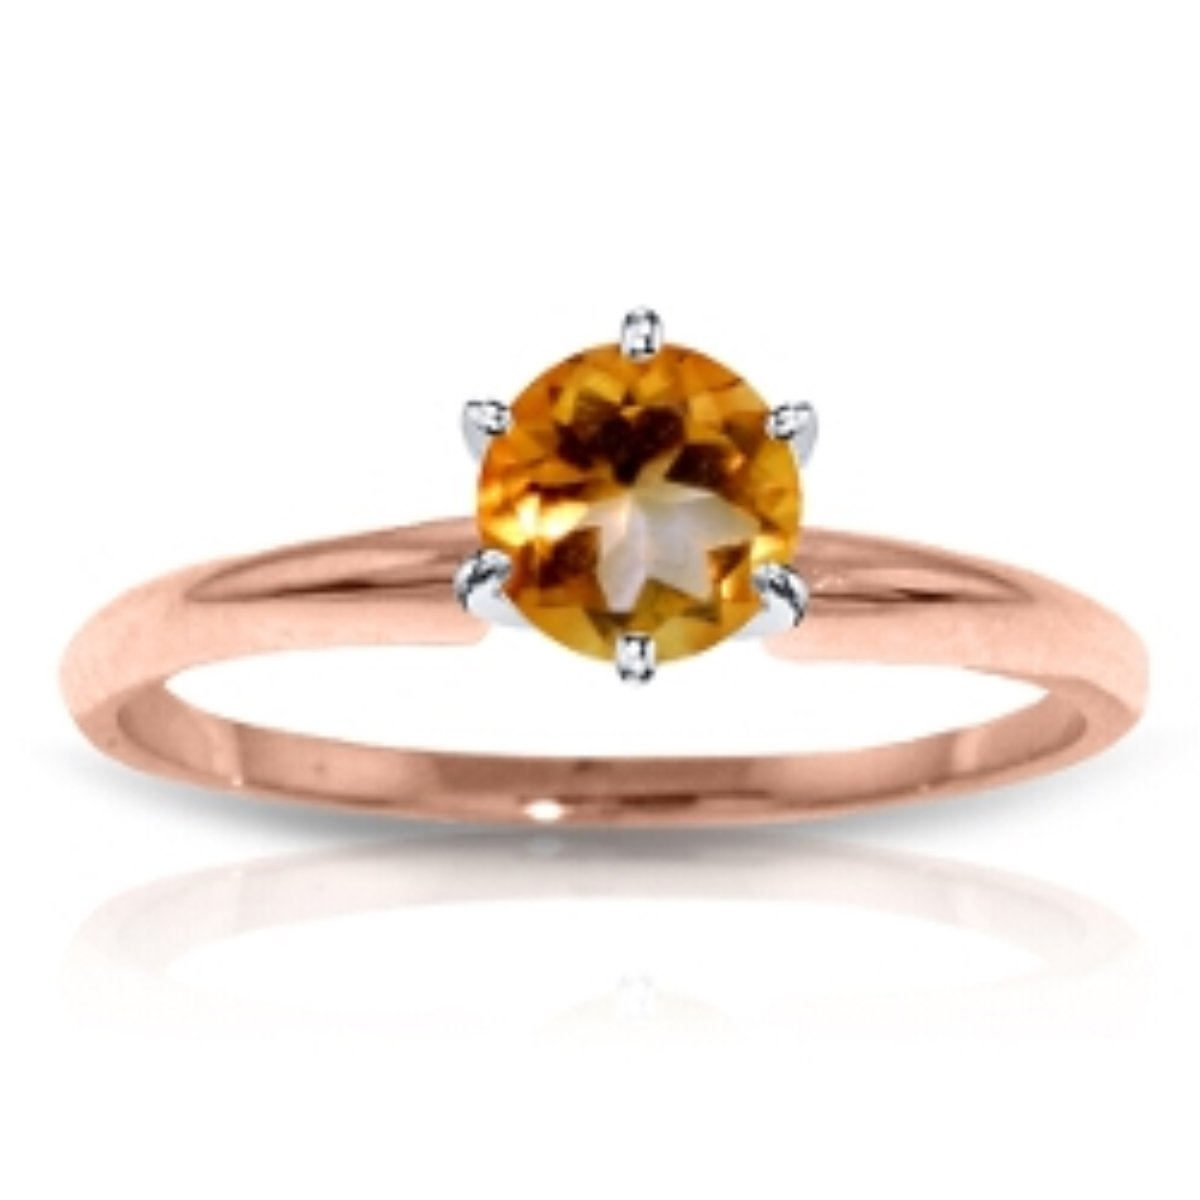 November Birthstone Natural Round Citrine Solitaire Ring Solid 14k Rose Gold 2849-R